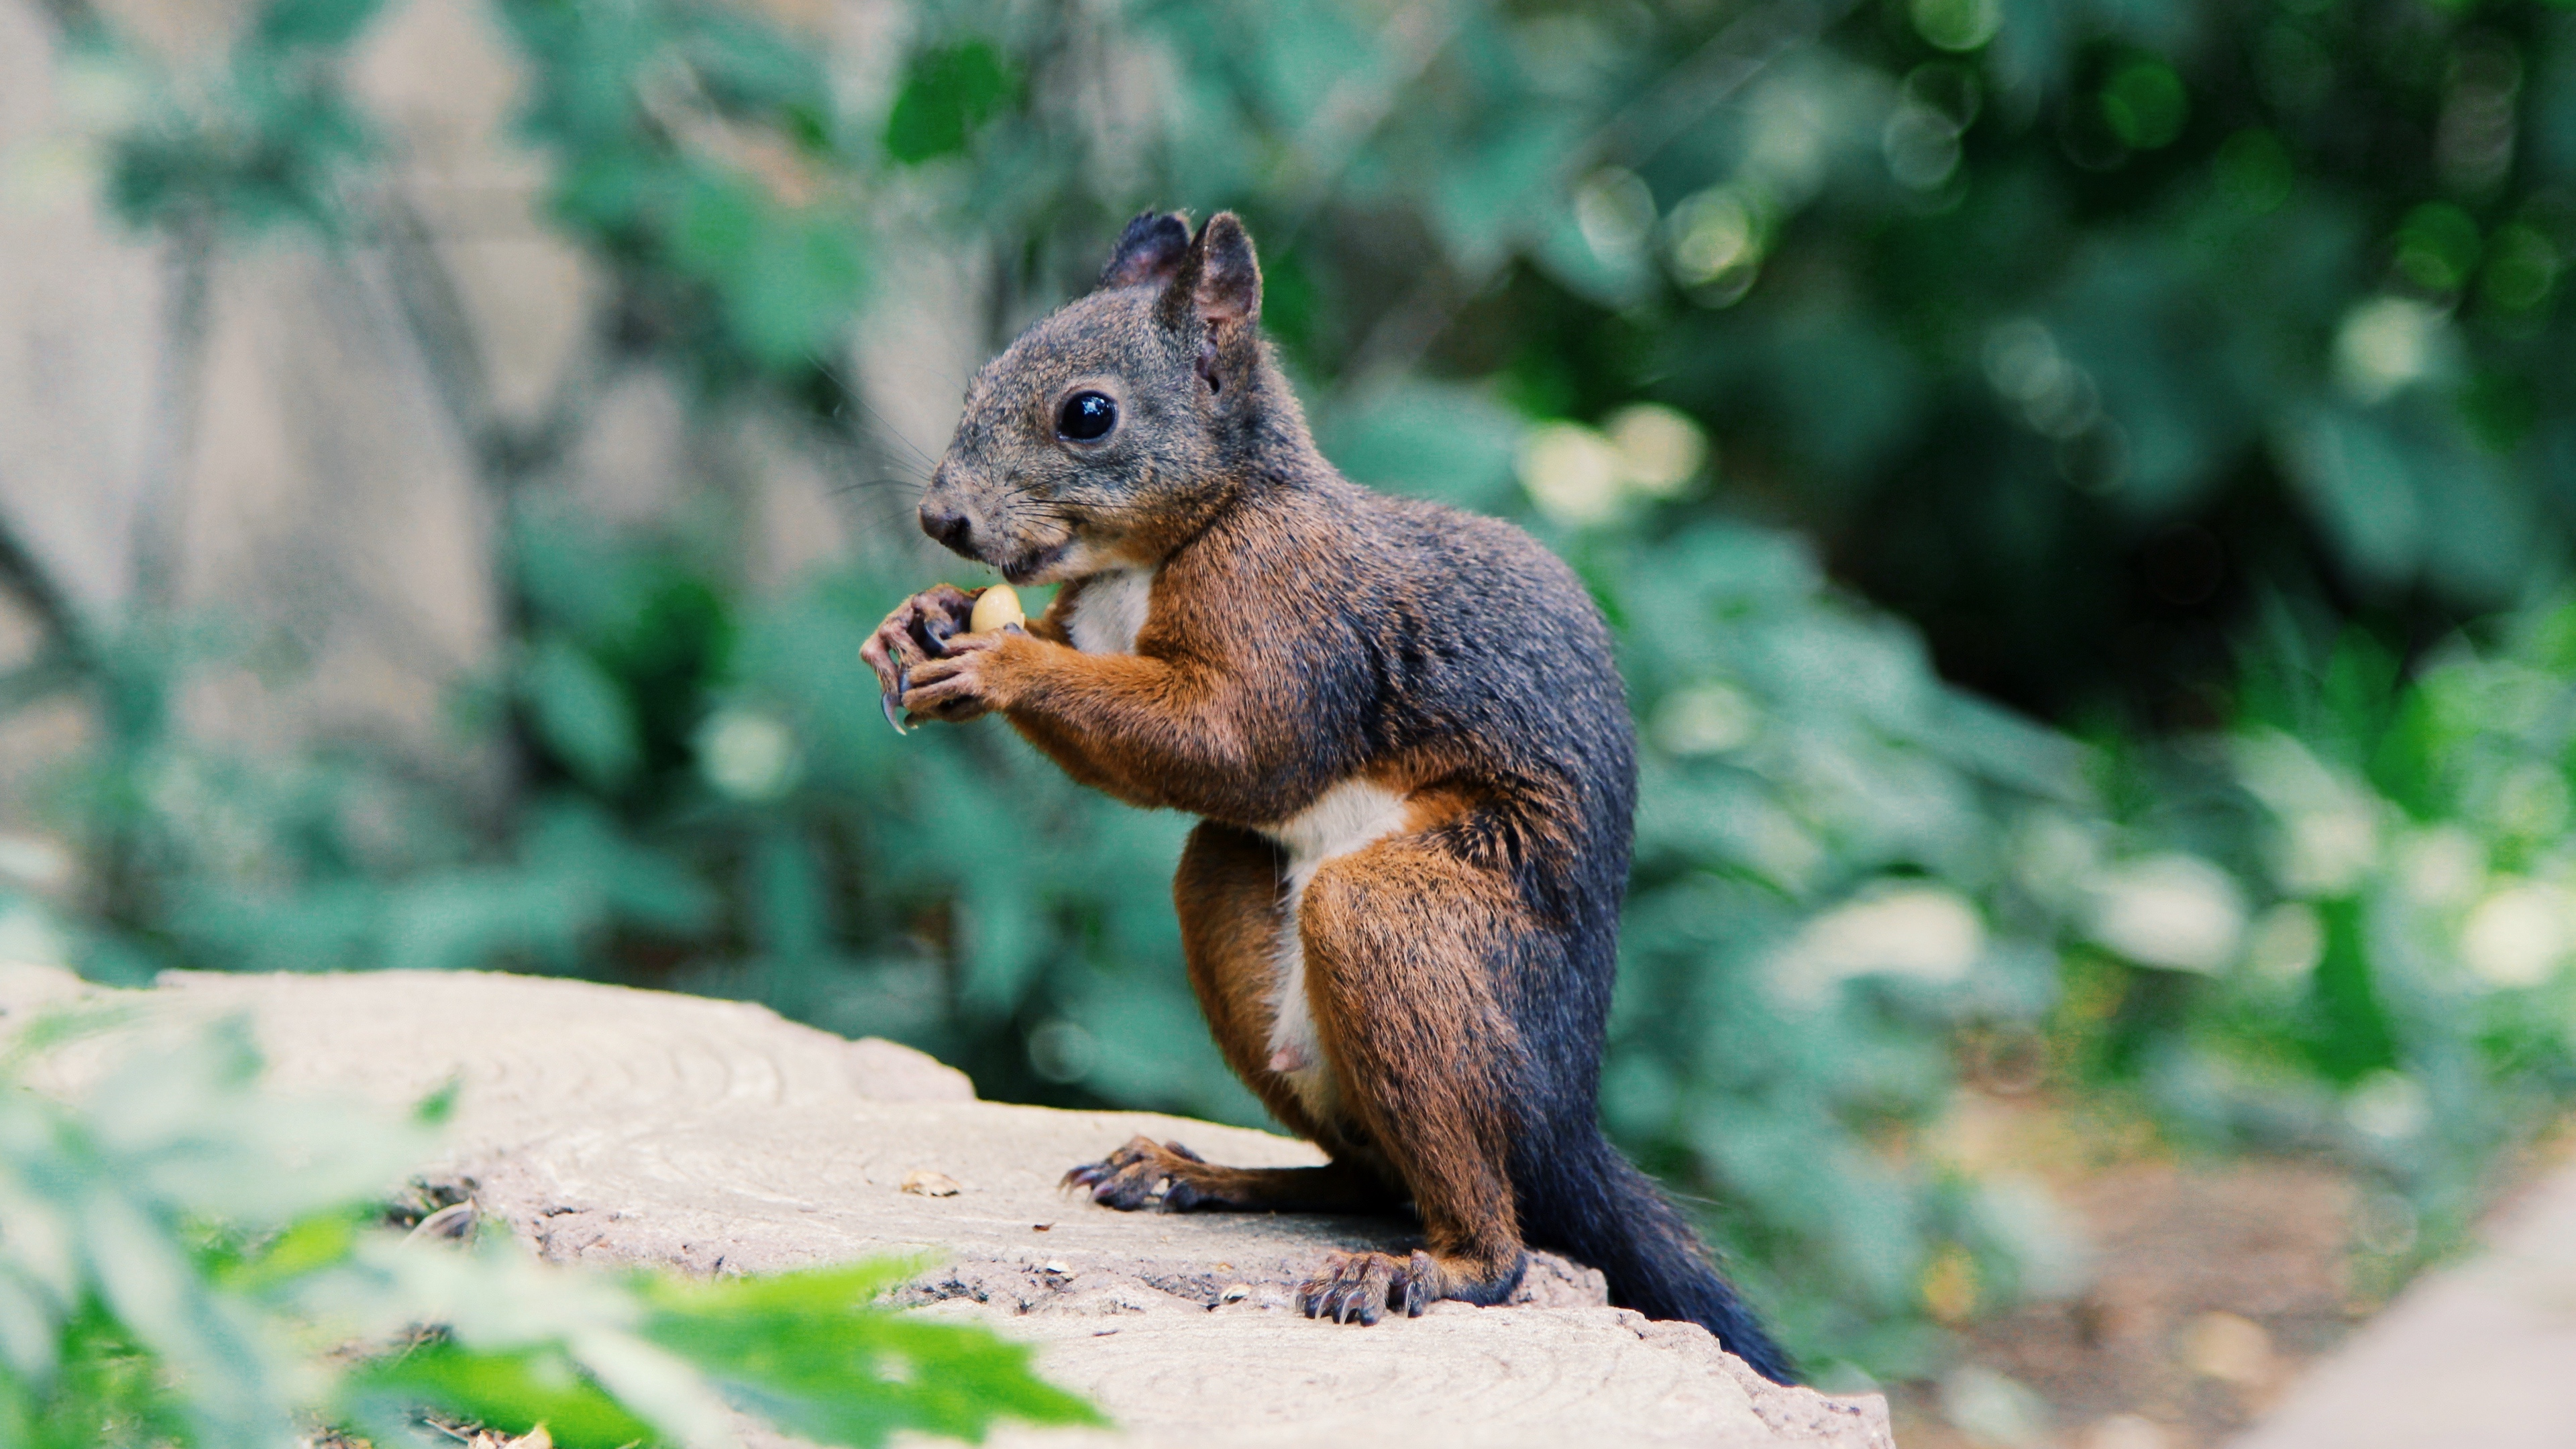 squirrel food rodent 4k 1542241415 - squirrel, food, rodent 4k - Squirrel, rodent, food